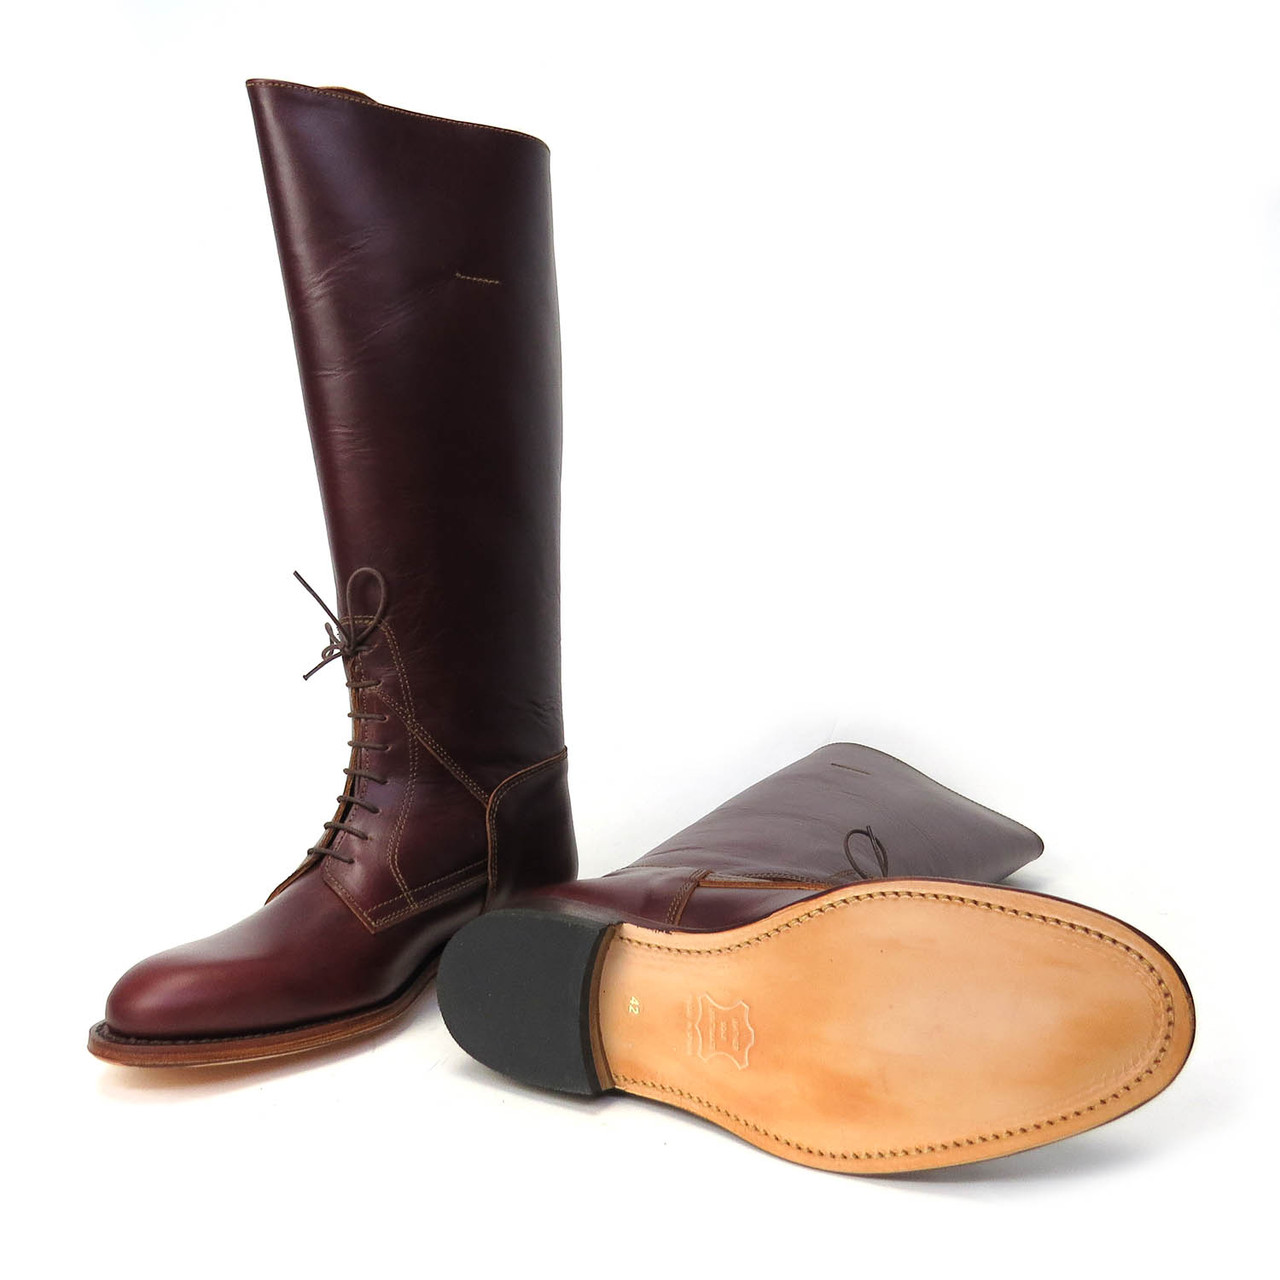 Officer Brown Riding Boots